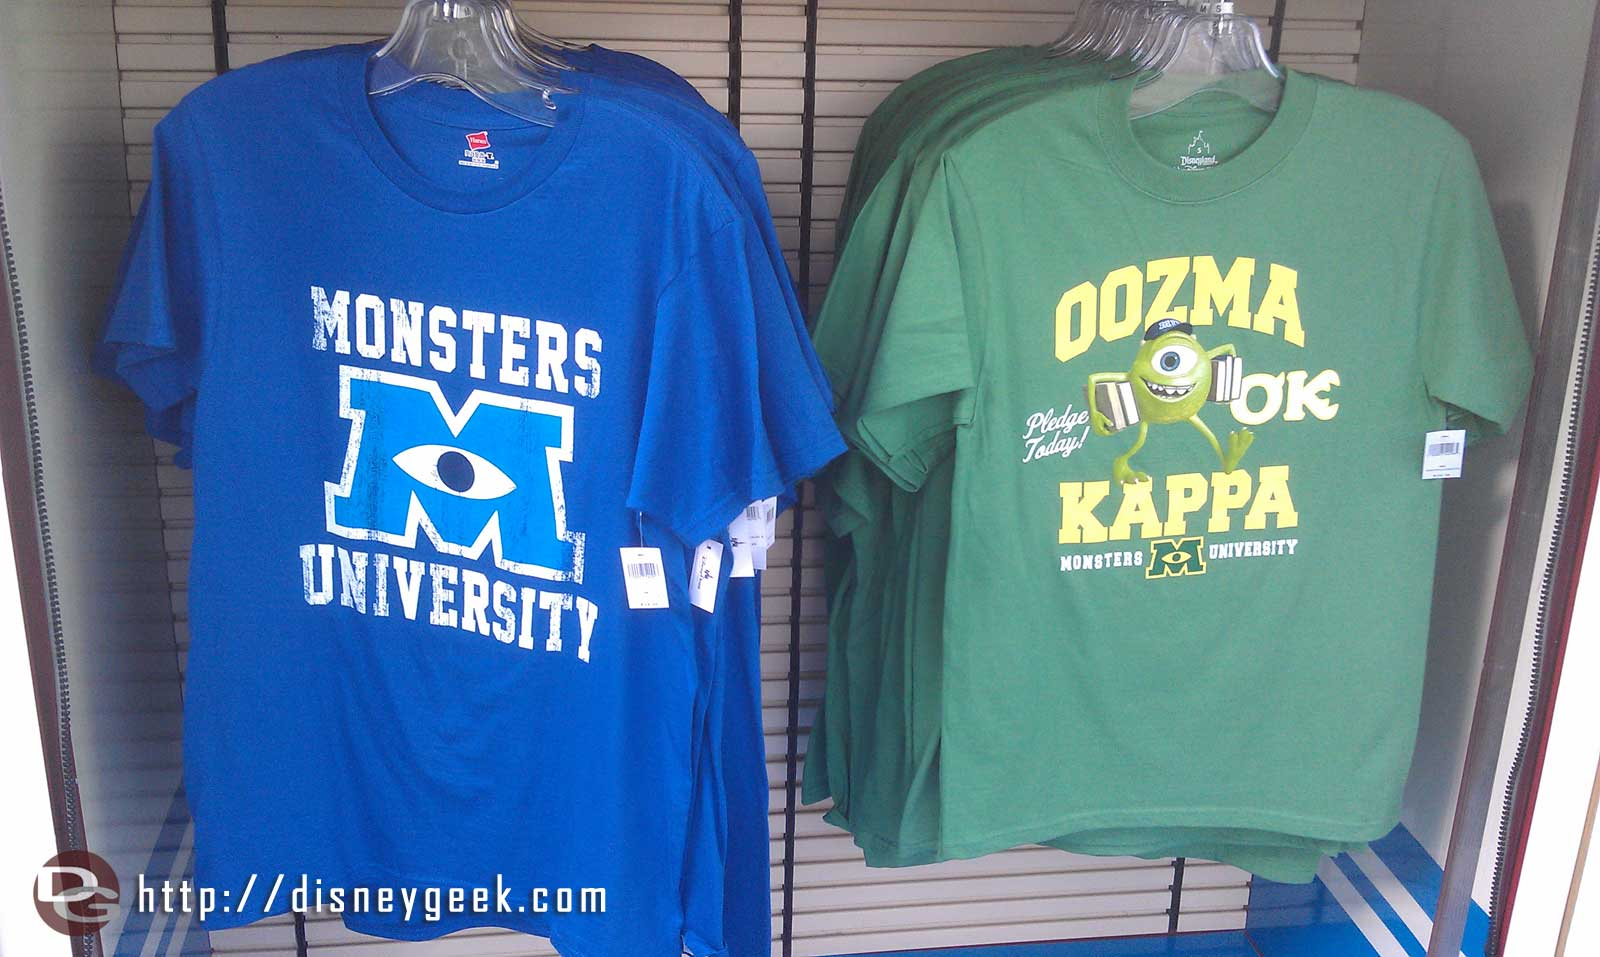 Two of the Monsters University t-shirts